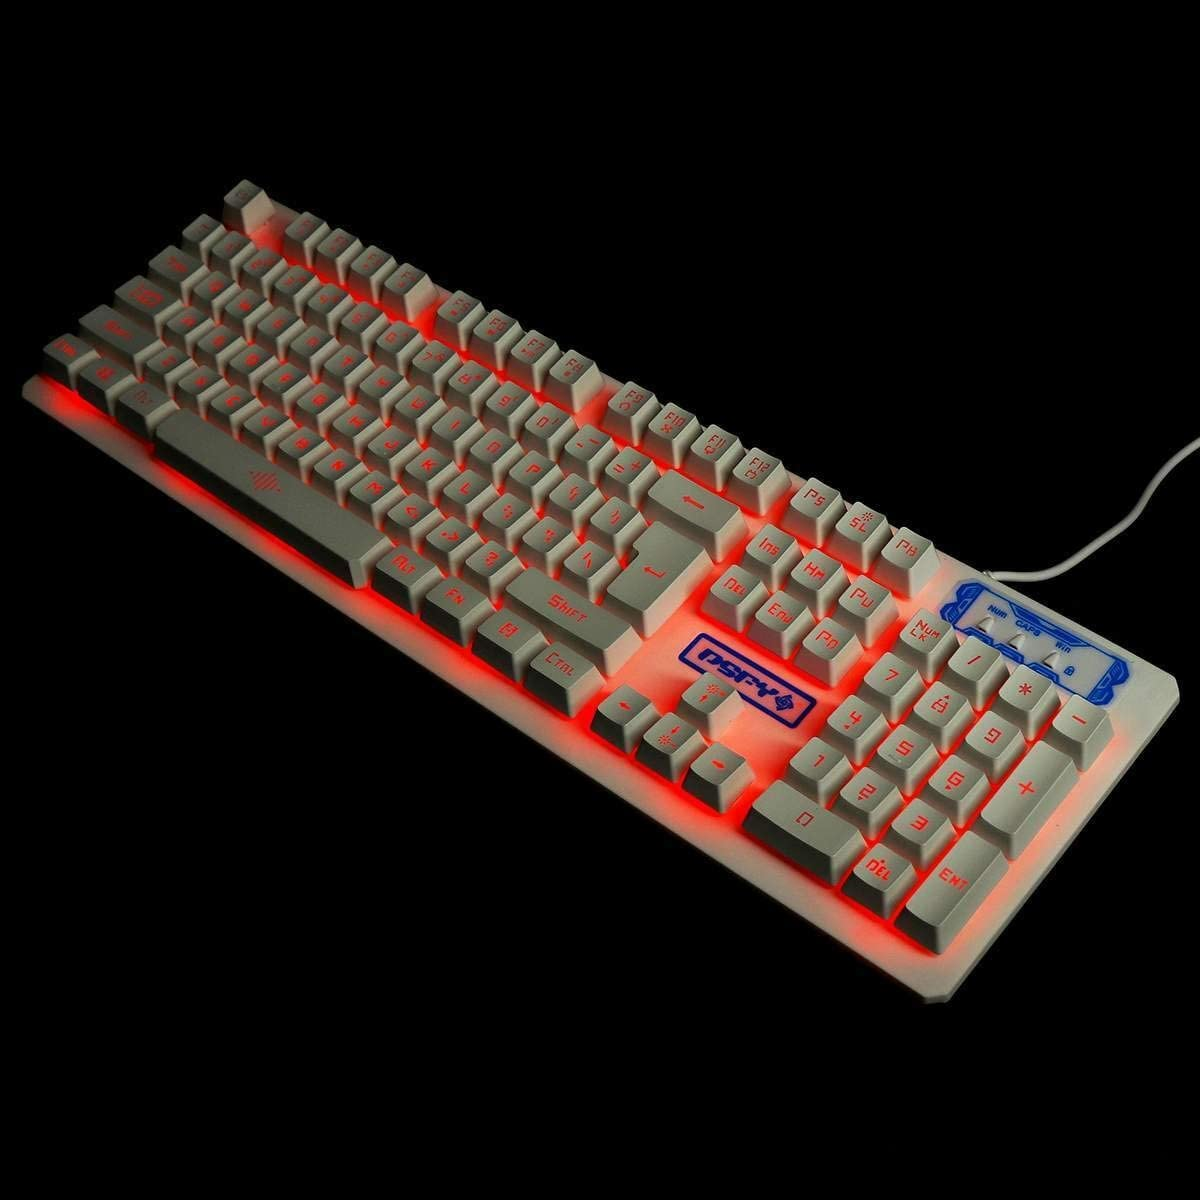 Gaming Keyboard Illuminated Gaming Mouses Pad Accessories Home Mechanical Wired USB Keyboard Set Computer Desktop Backlight Headset Keyboard Color : Blue